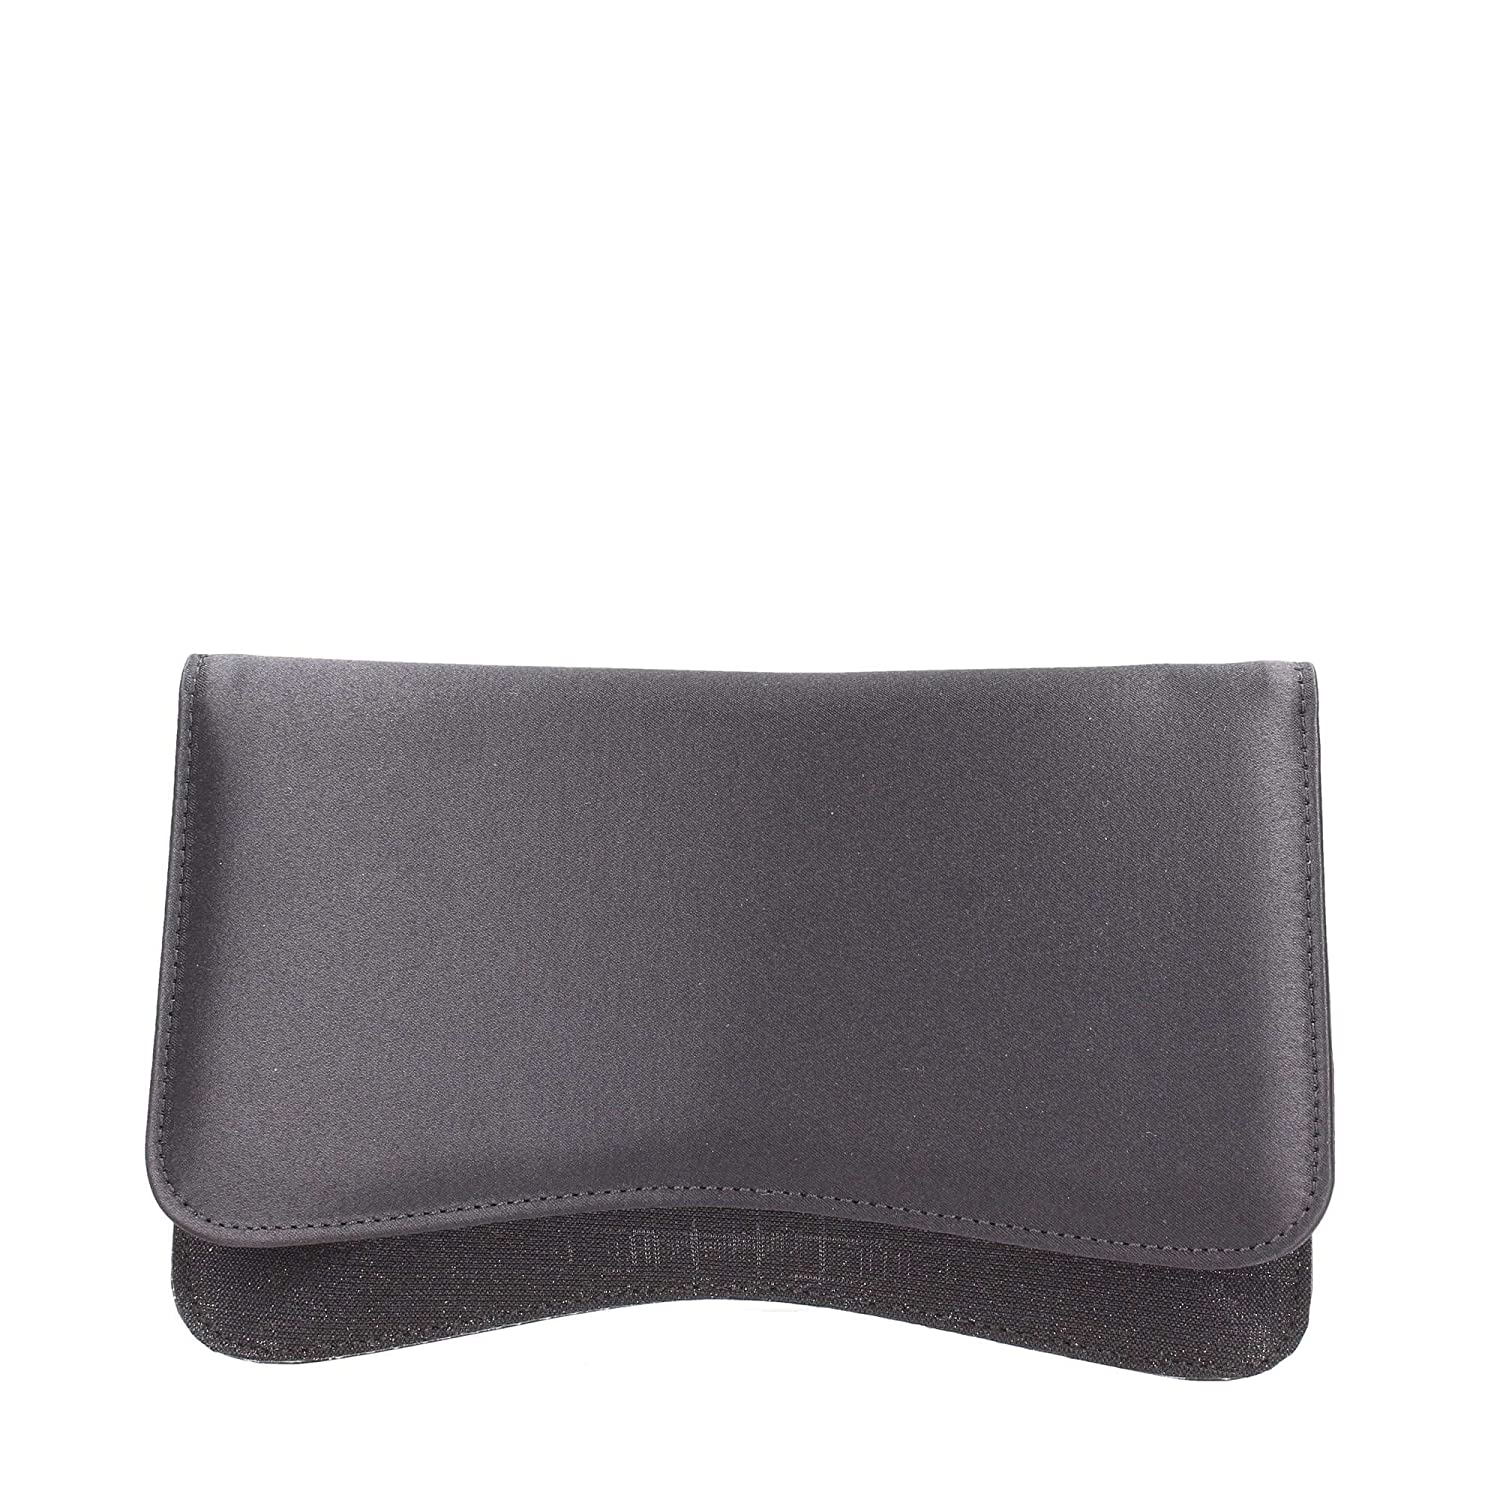 601e69f4b7 Melluso BJ013 Pochette Donna Nero TU: Amazon.it: Abbigliamento